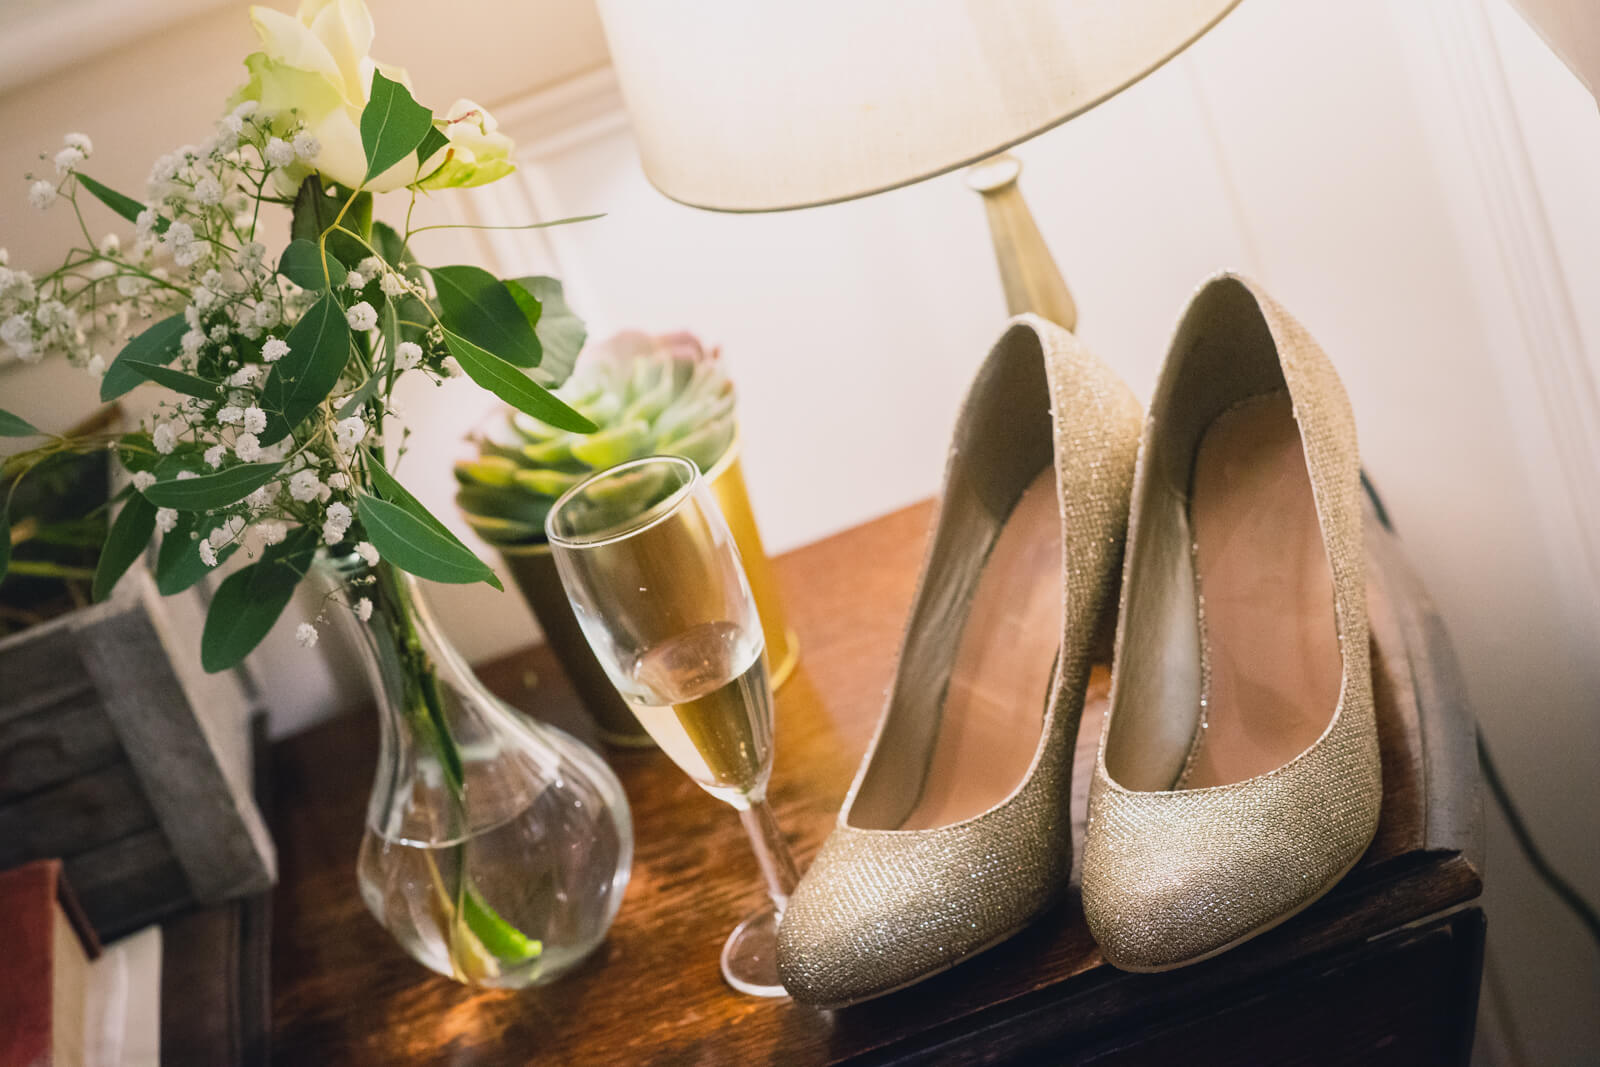 Bride's shoes, flowers and a champagne glass lit by a table lamp on a side table